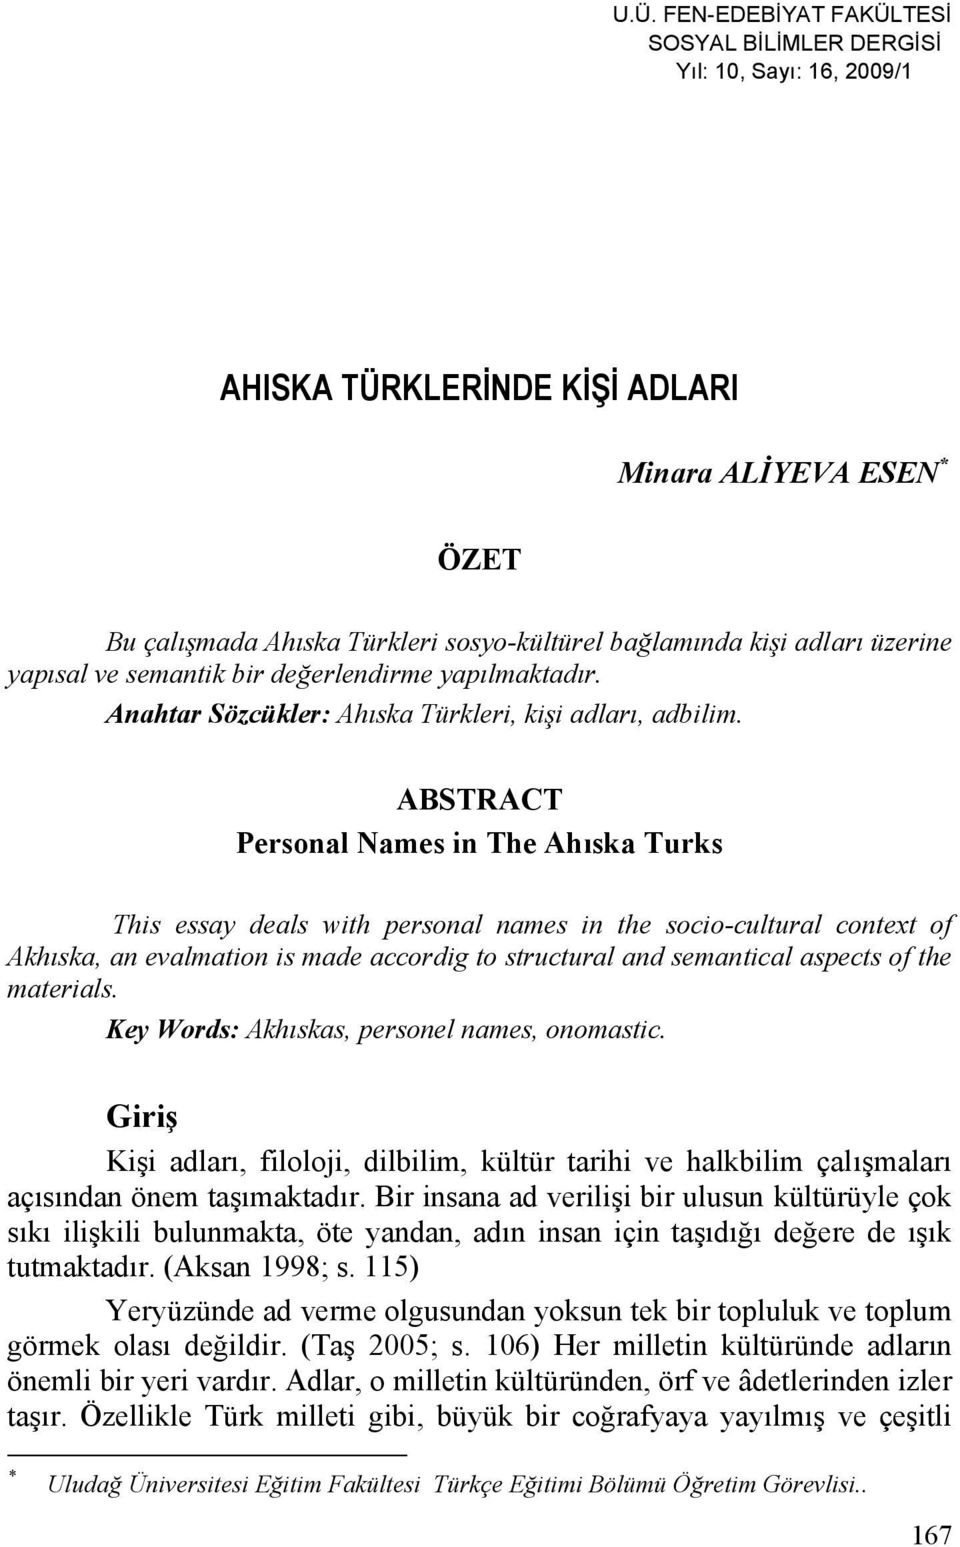 ABSTRACT Personal Names in The Ahıska Turks This essay deals with personal names in the socio-cultural context of Akhıska, an evalmation is made accordig to structural and semantical aspects of the